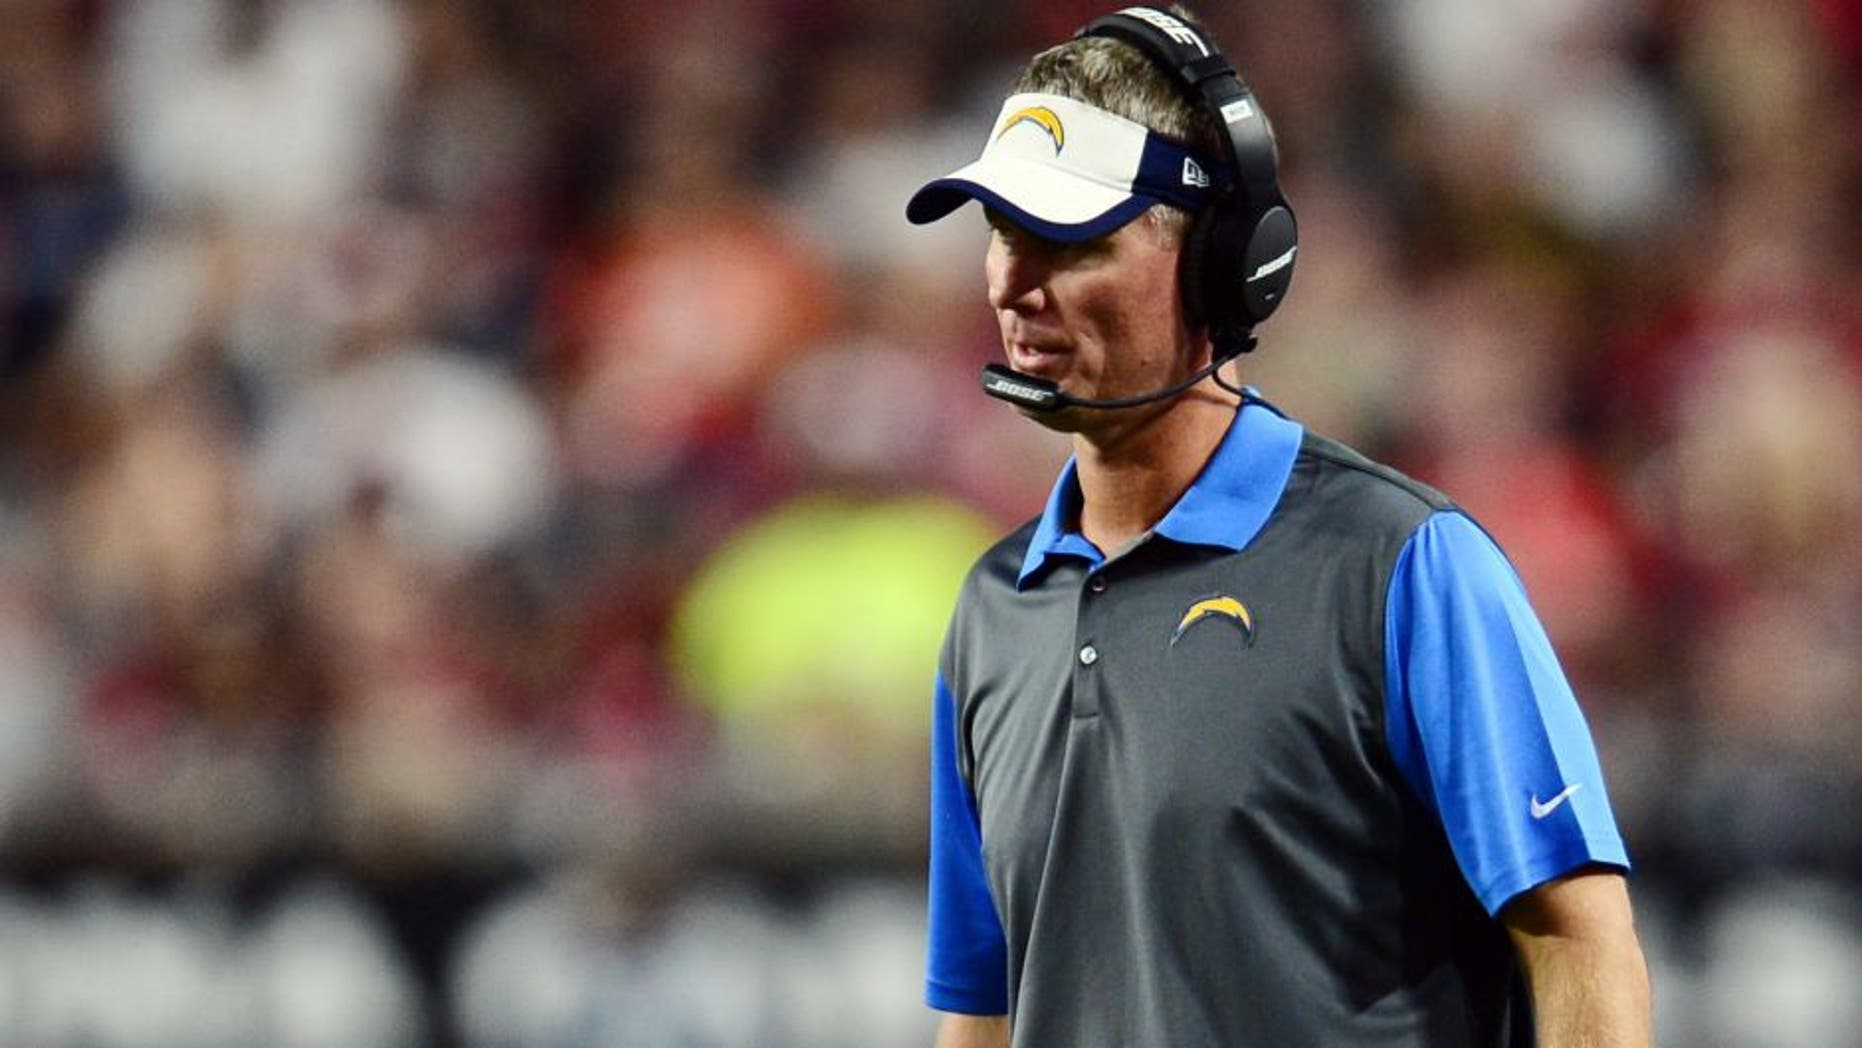 Aug 22, 2015; Glendale, AZ, USA; San Diego Chargers head coach Mike McCoy looks on against the Arizona Cardinals during the first half at University of Phoenix Stadium. Mandatory Credit: Joe Camporeale-USA TODAY Sports